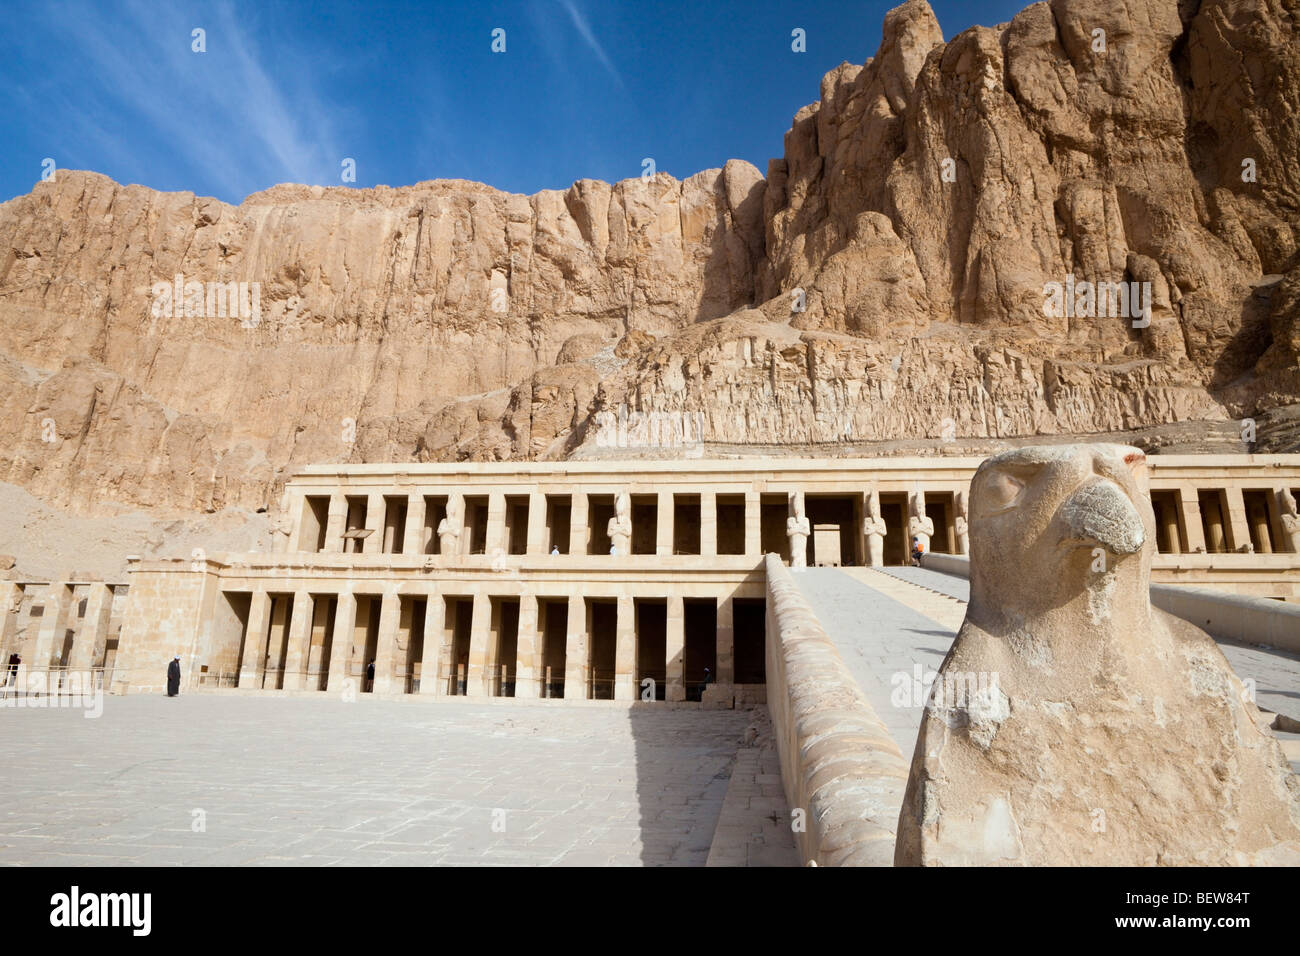 Horus Hawk at ascent of Mortuary Temple of Queen Hatshepsut, Luxor, Egypt - Stock Image